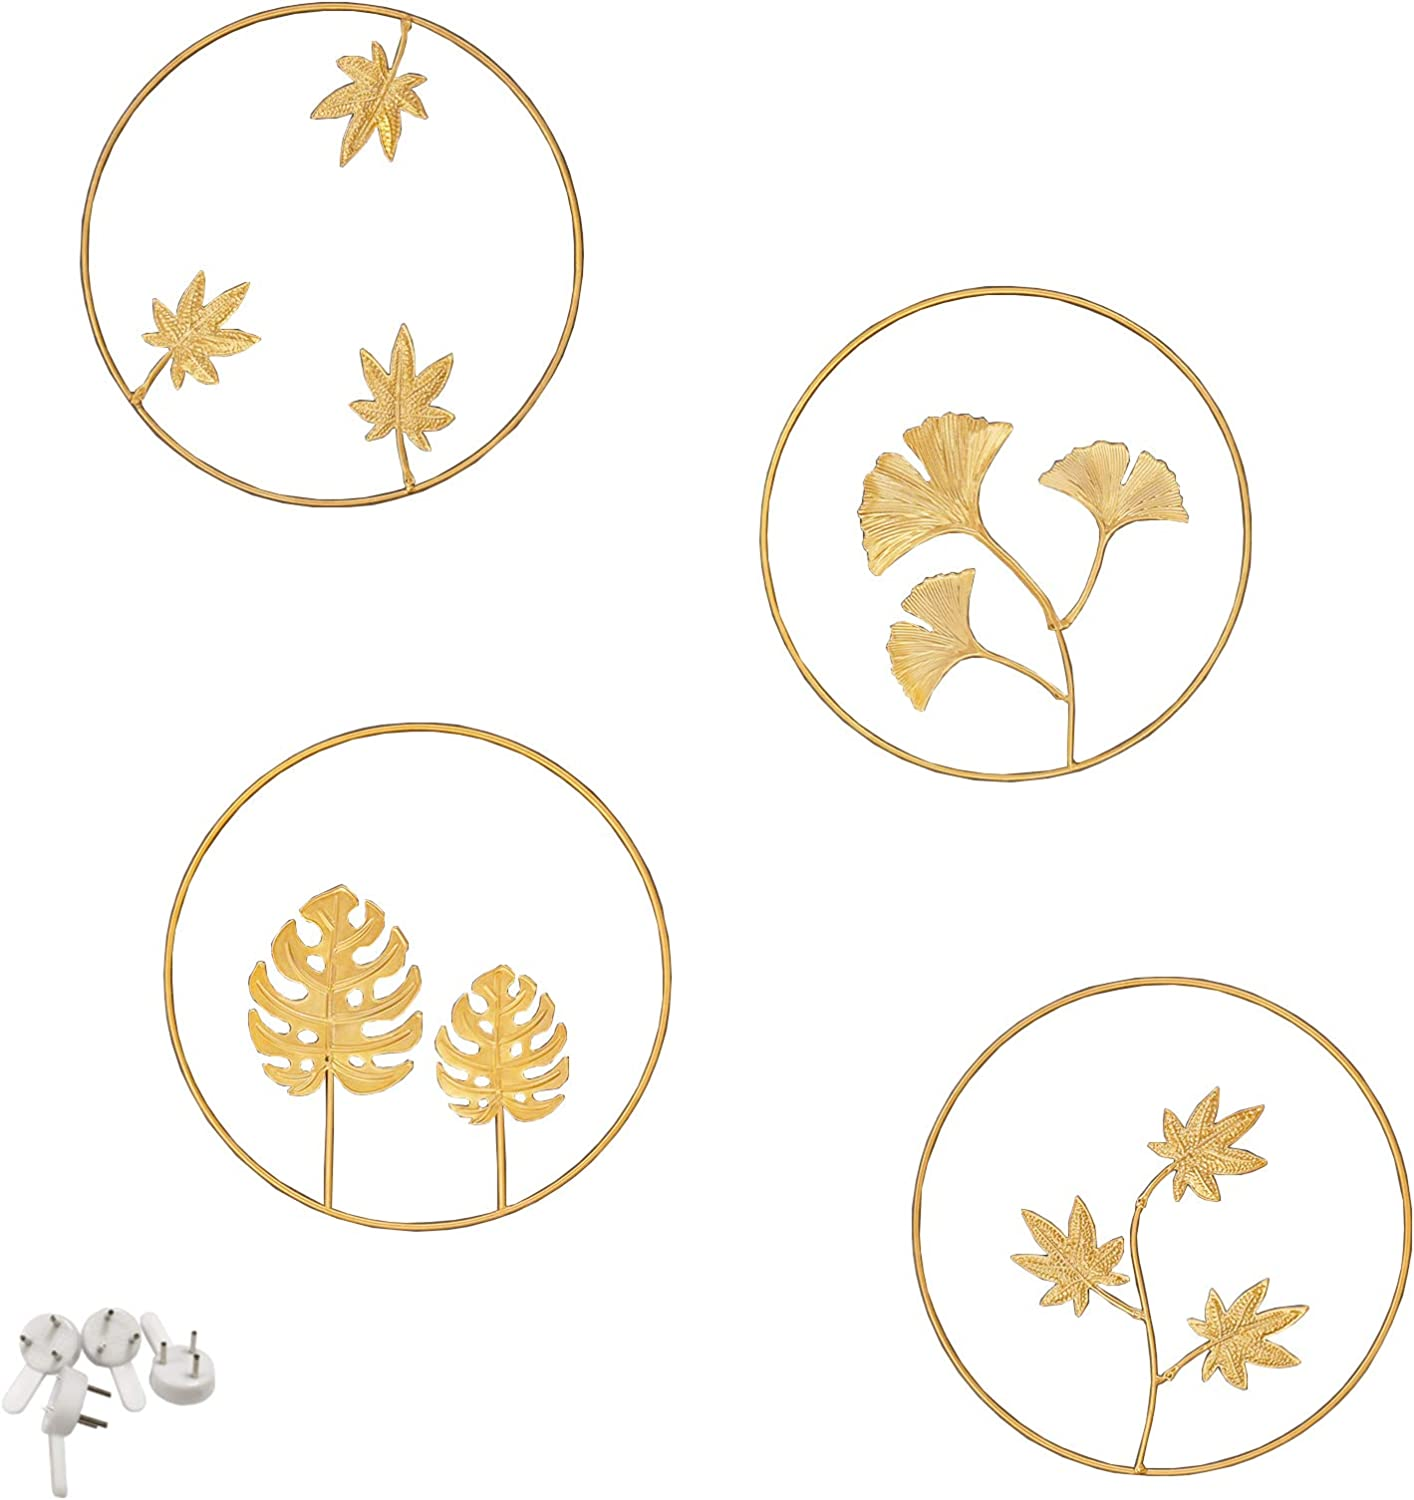 Tinsow Iron Wall Sculptures,Gold Metal Ginkgo, Maple, Monstera Leaf Wall Decor Round Wall Ornaments,Easy Installation Great for Bedroom Hanging Parts Hotel Wall Decoration (Gold, 4)